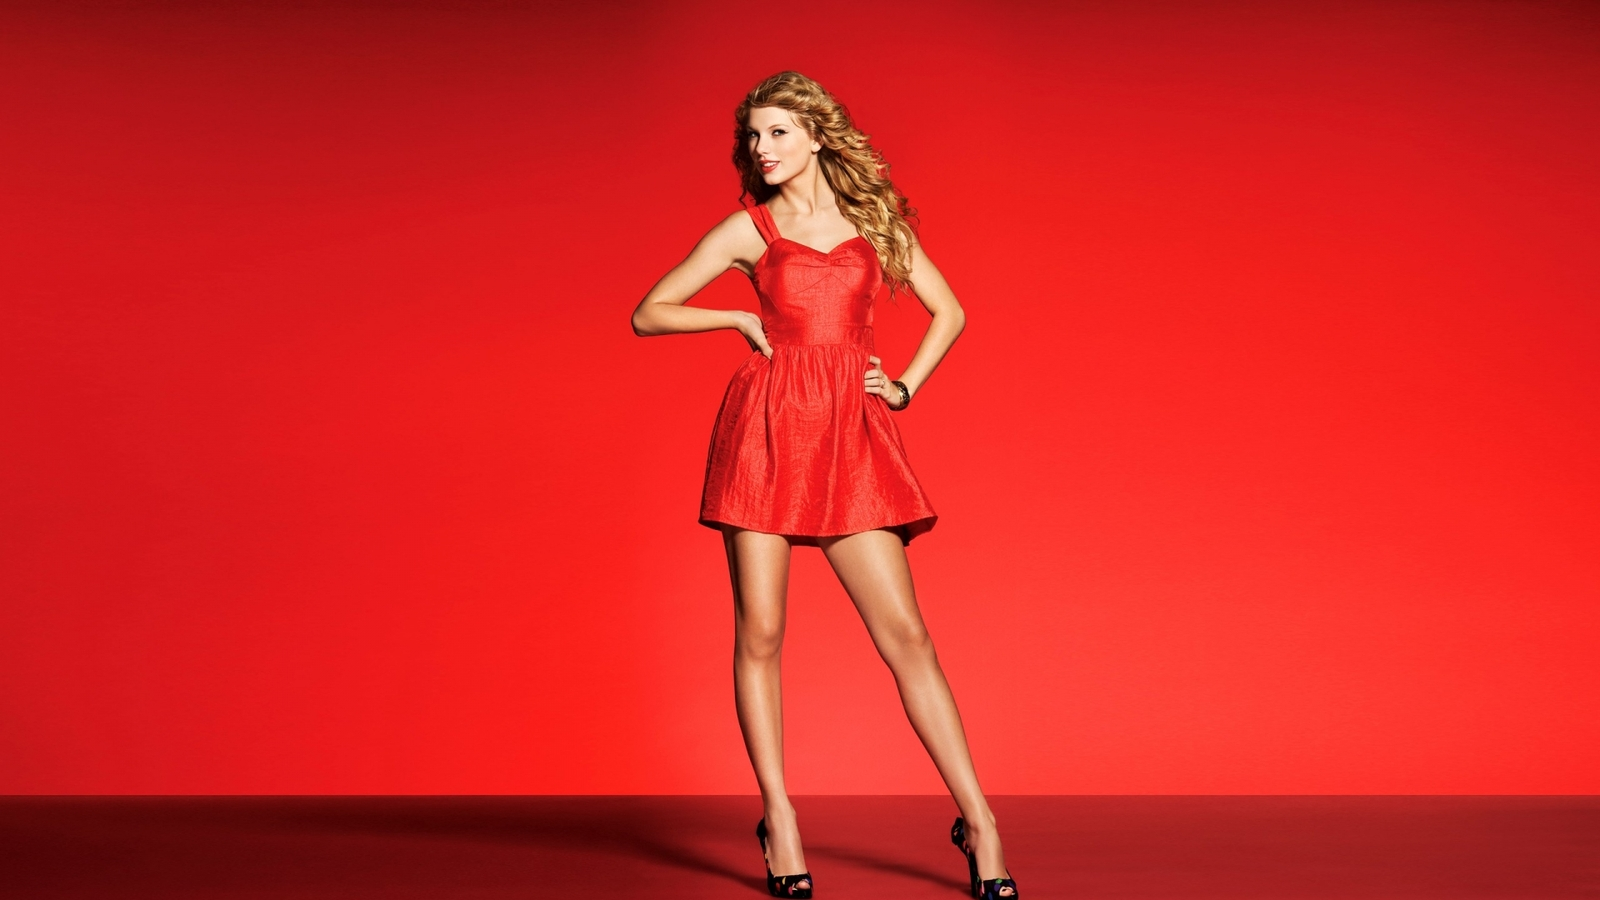 taylor swift images red hd wallpaper and background photos (35098344)